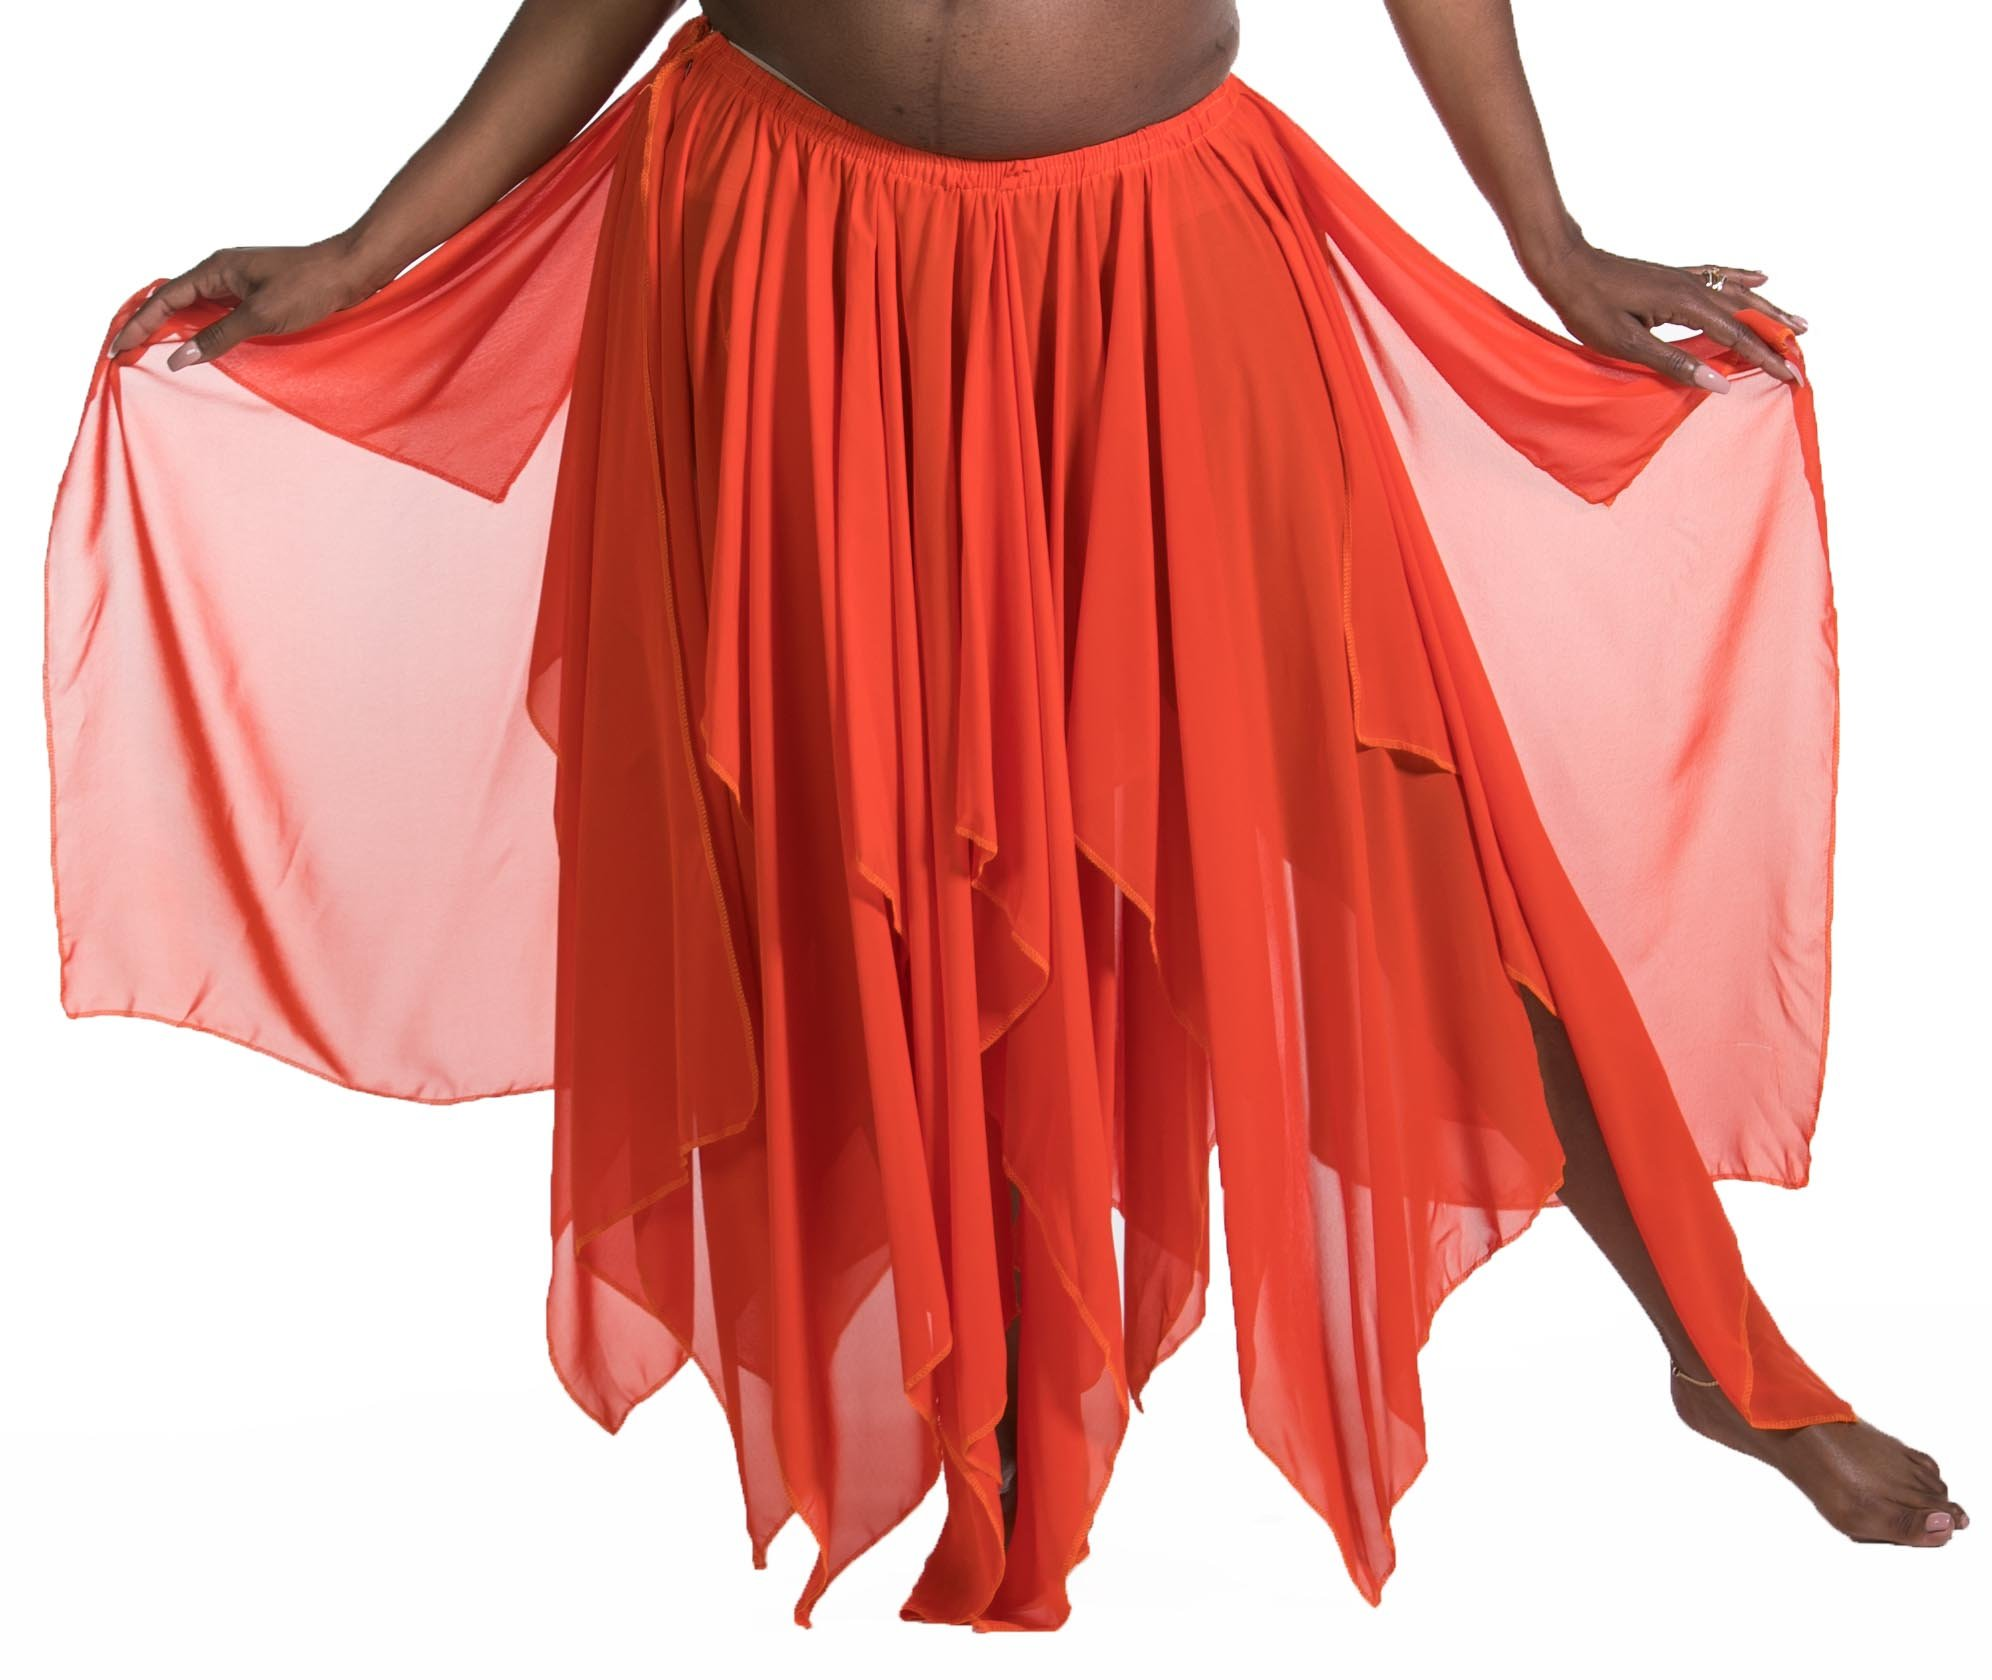 BELLY DANCE ACCESSORIES 13 PANEL CHIFFON SKIRT - ORANGE by Miss Belly Dance